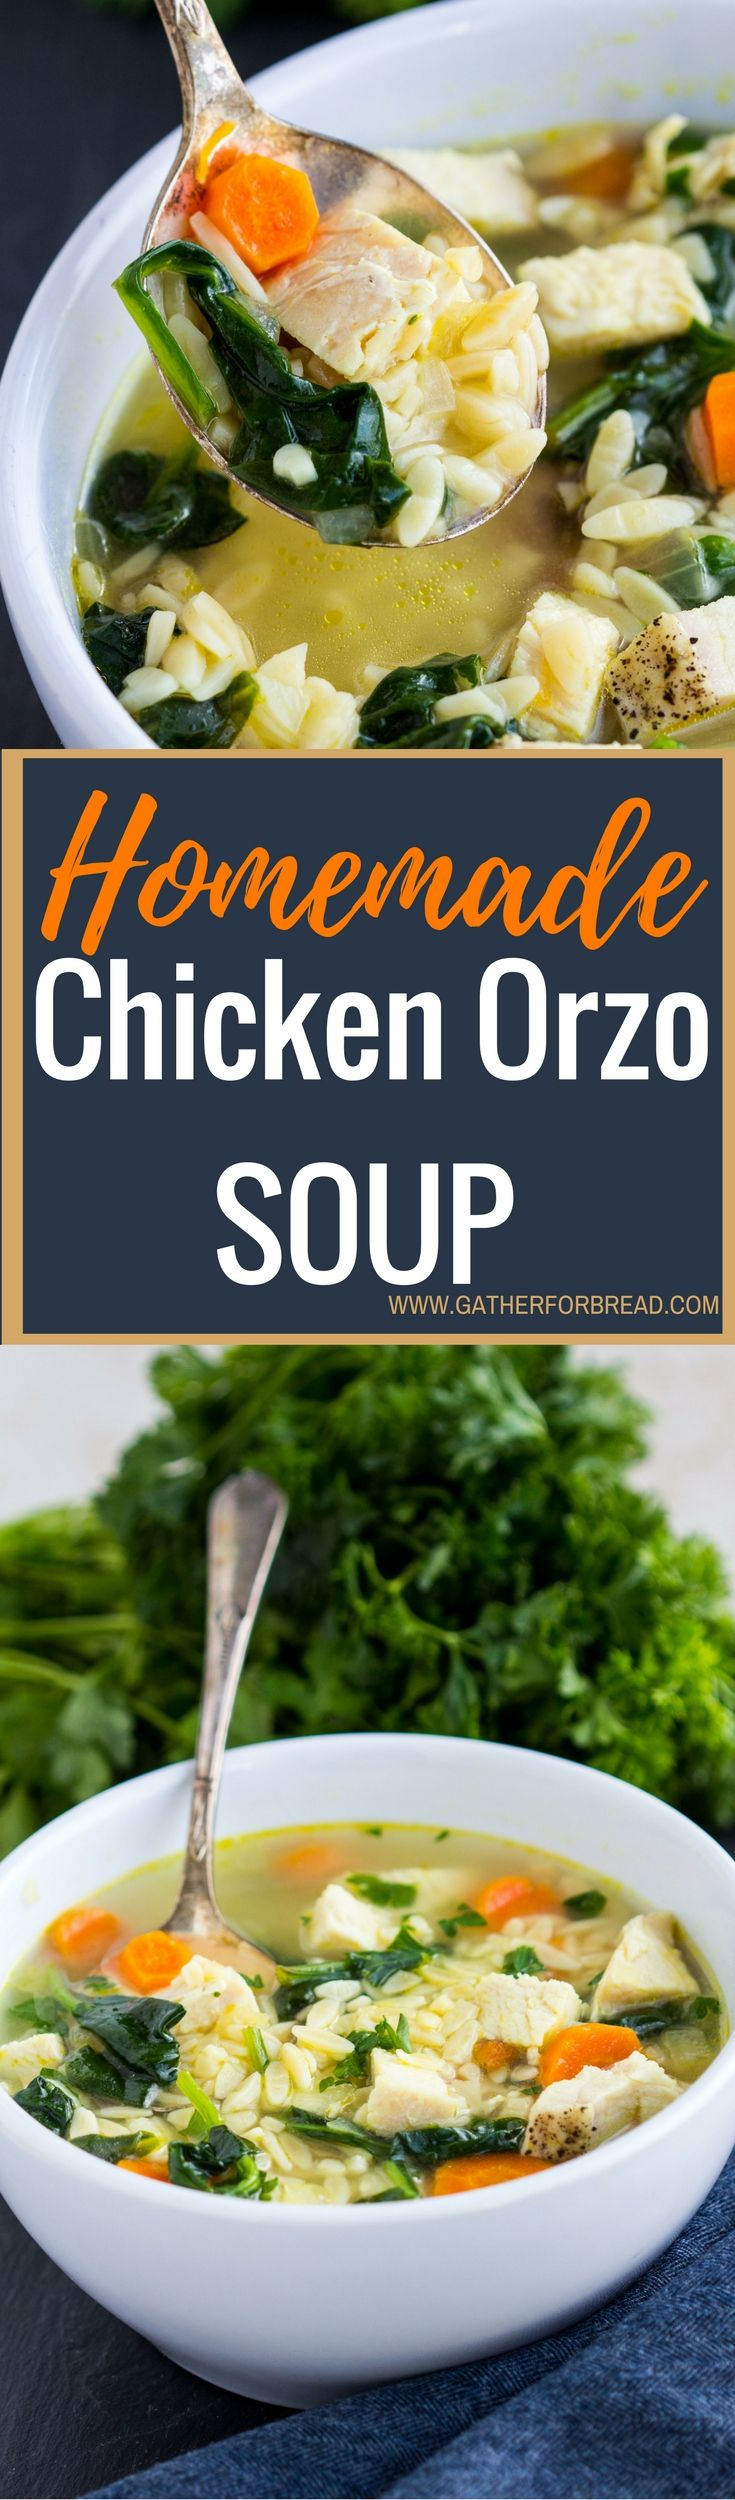 Homemade Chicken Orzo Soup - Homemade chicken orzo soup made with fresh spinach, cooked chicken and fresh Parmesan cheese for a comforting bowl. Perfect for winter nights dinner.